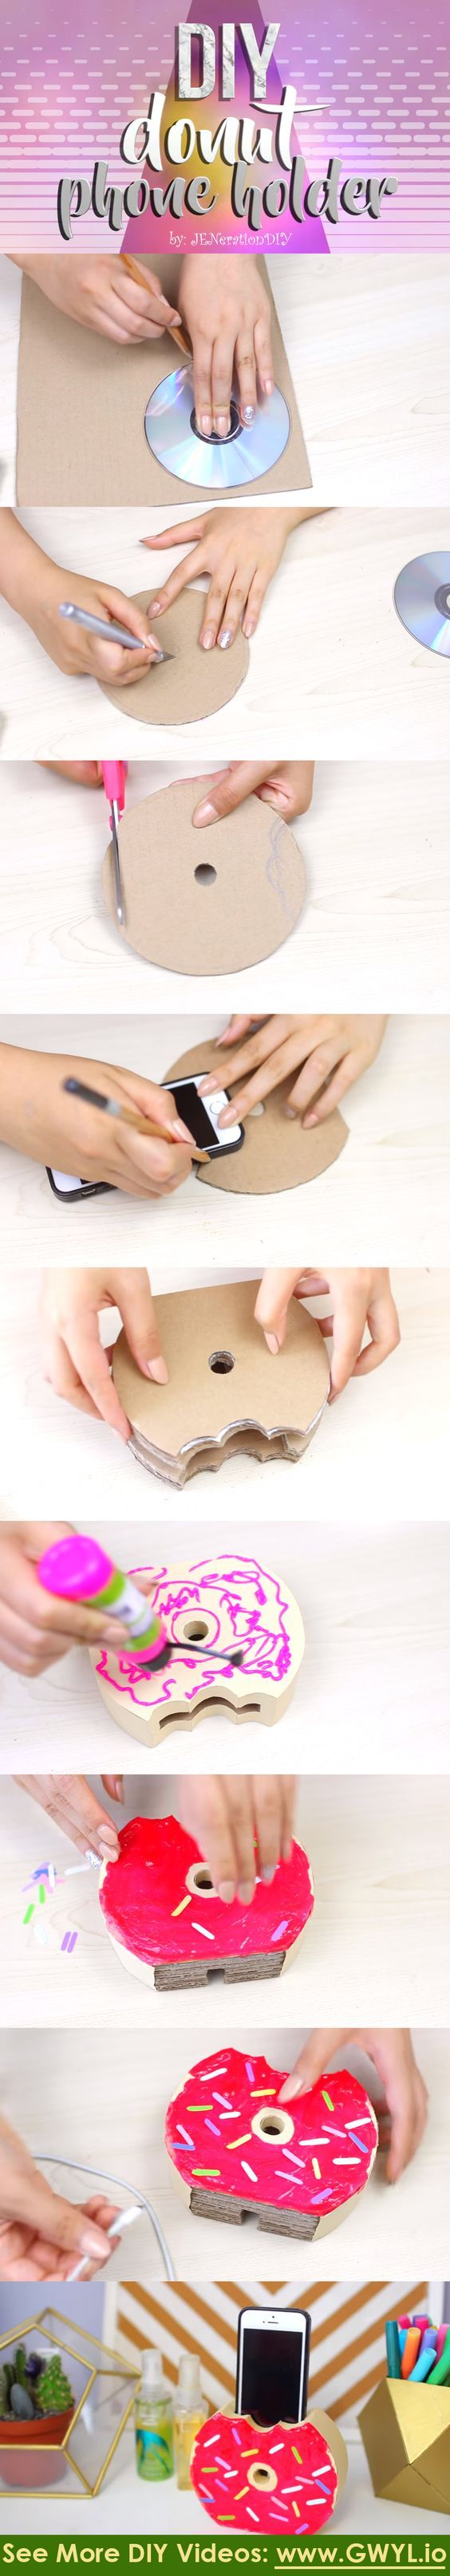 See video and written instructions here==>   Easy-To-Do Donut Phone Charger/Holder   http://gwyl.io/easy-donut-phone-chargerholder/: